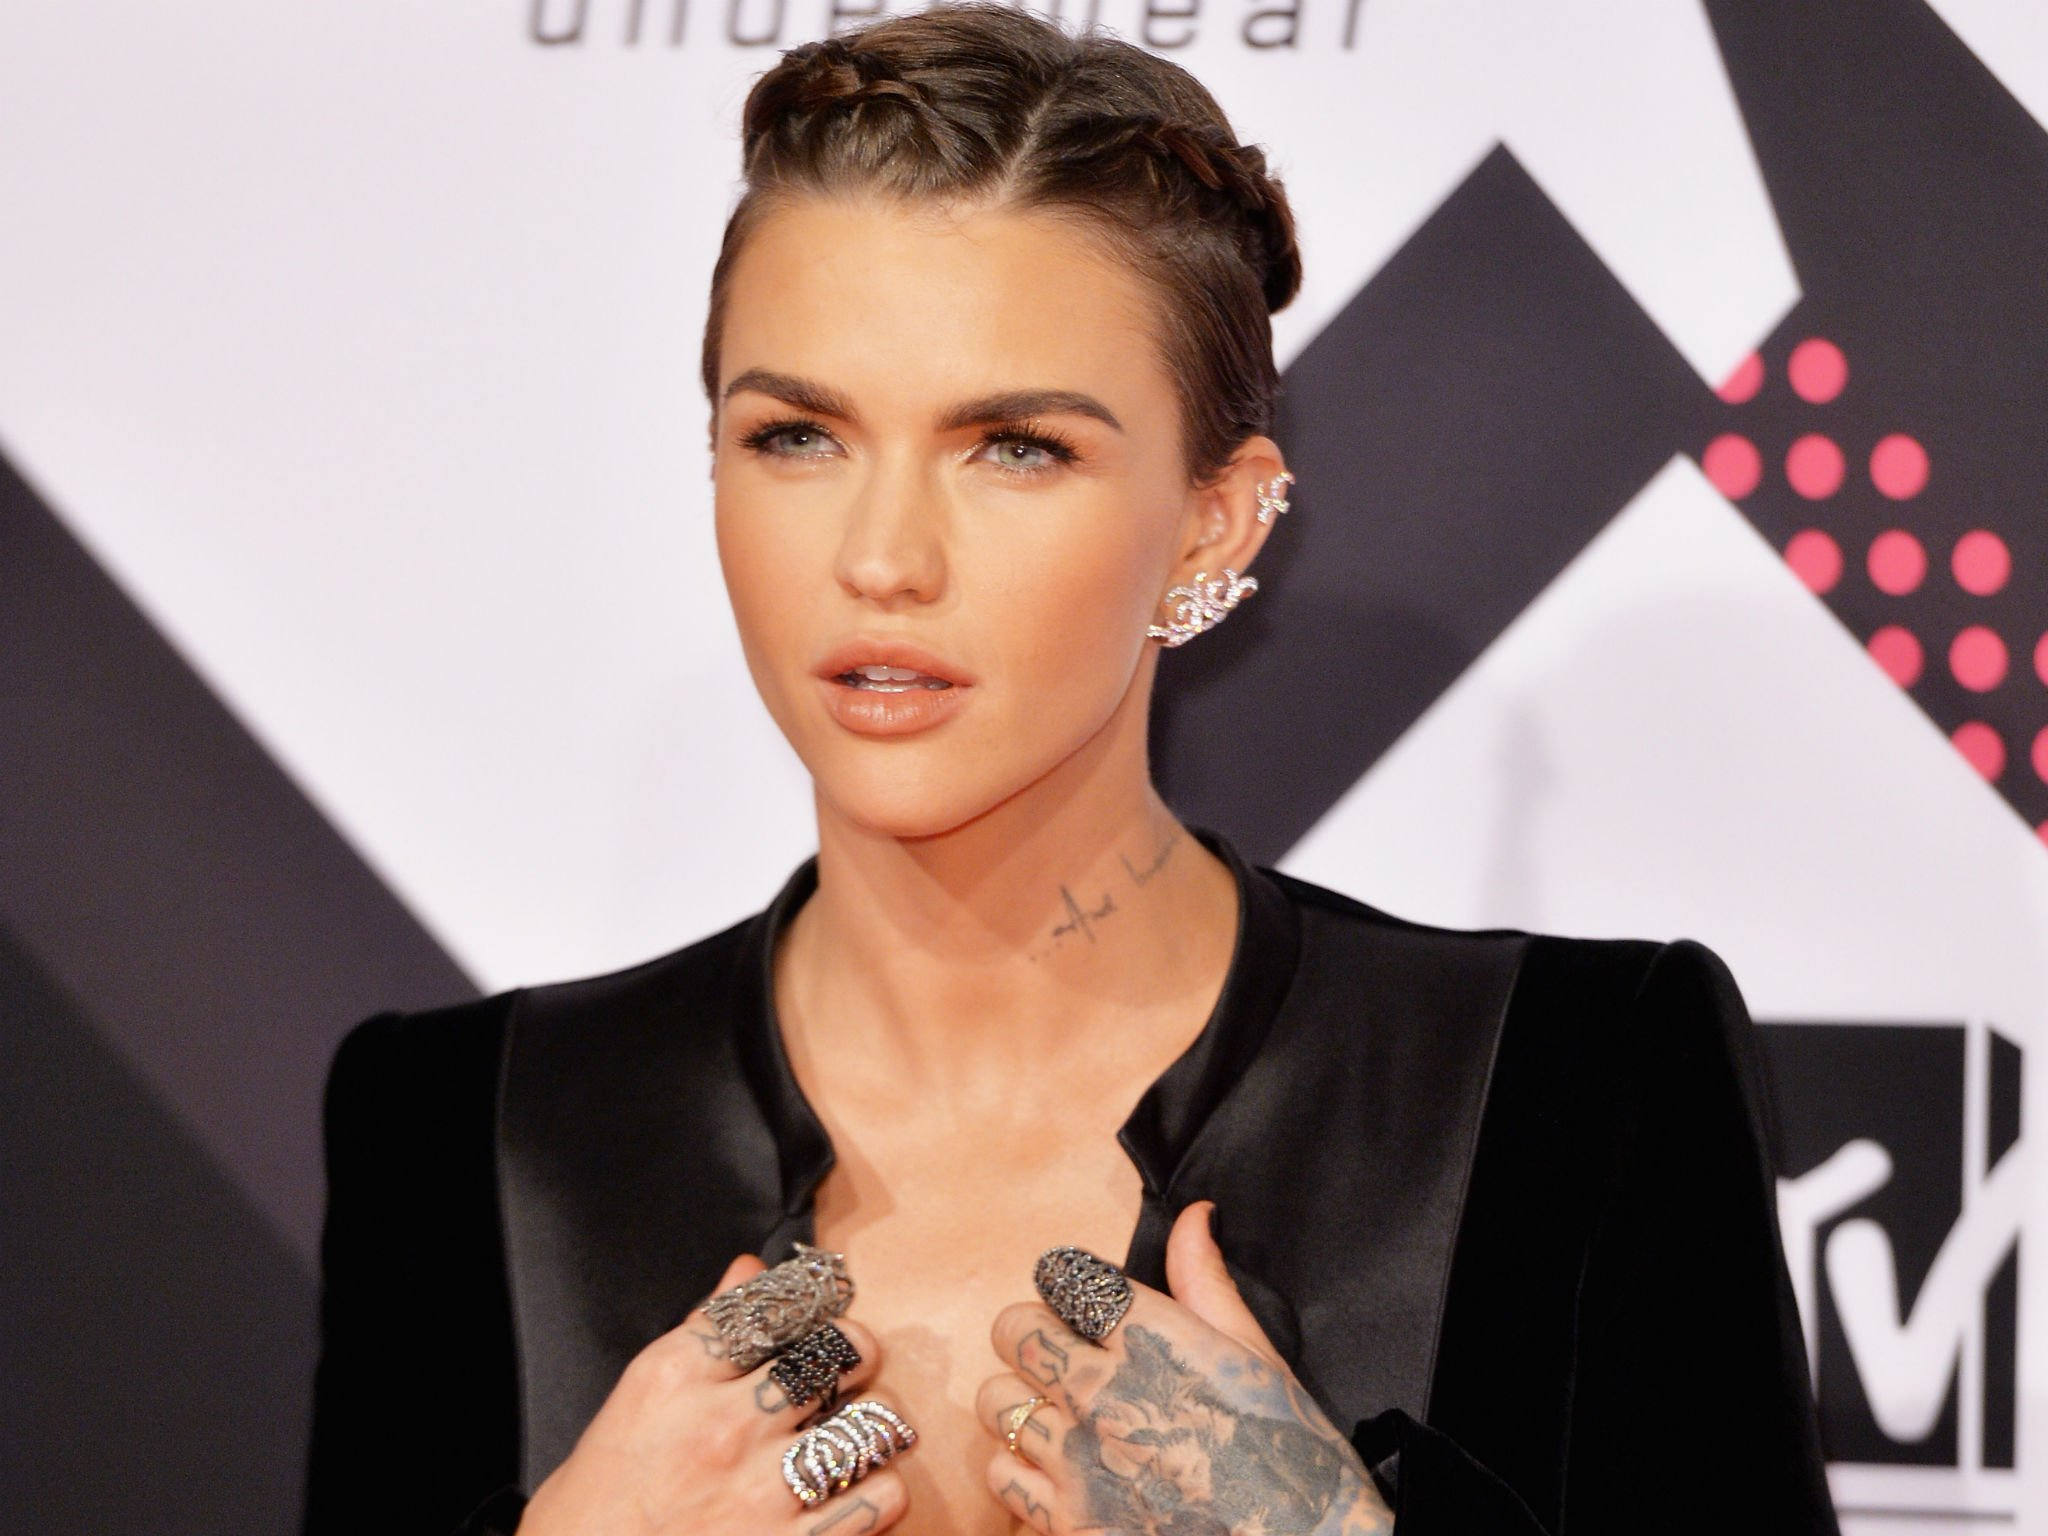 Actress Ruby Rose named 'most dangerous' celebrity to search online